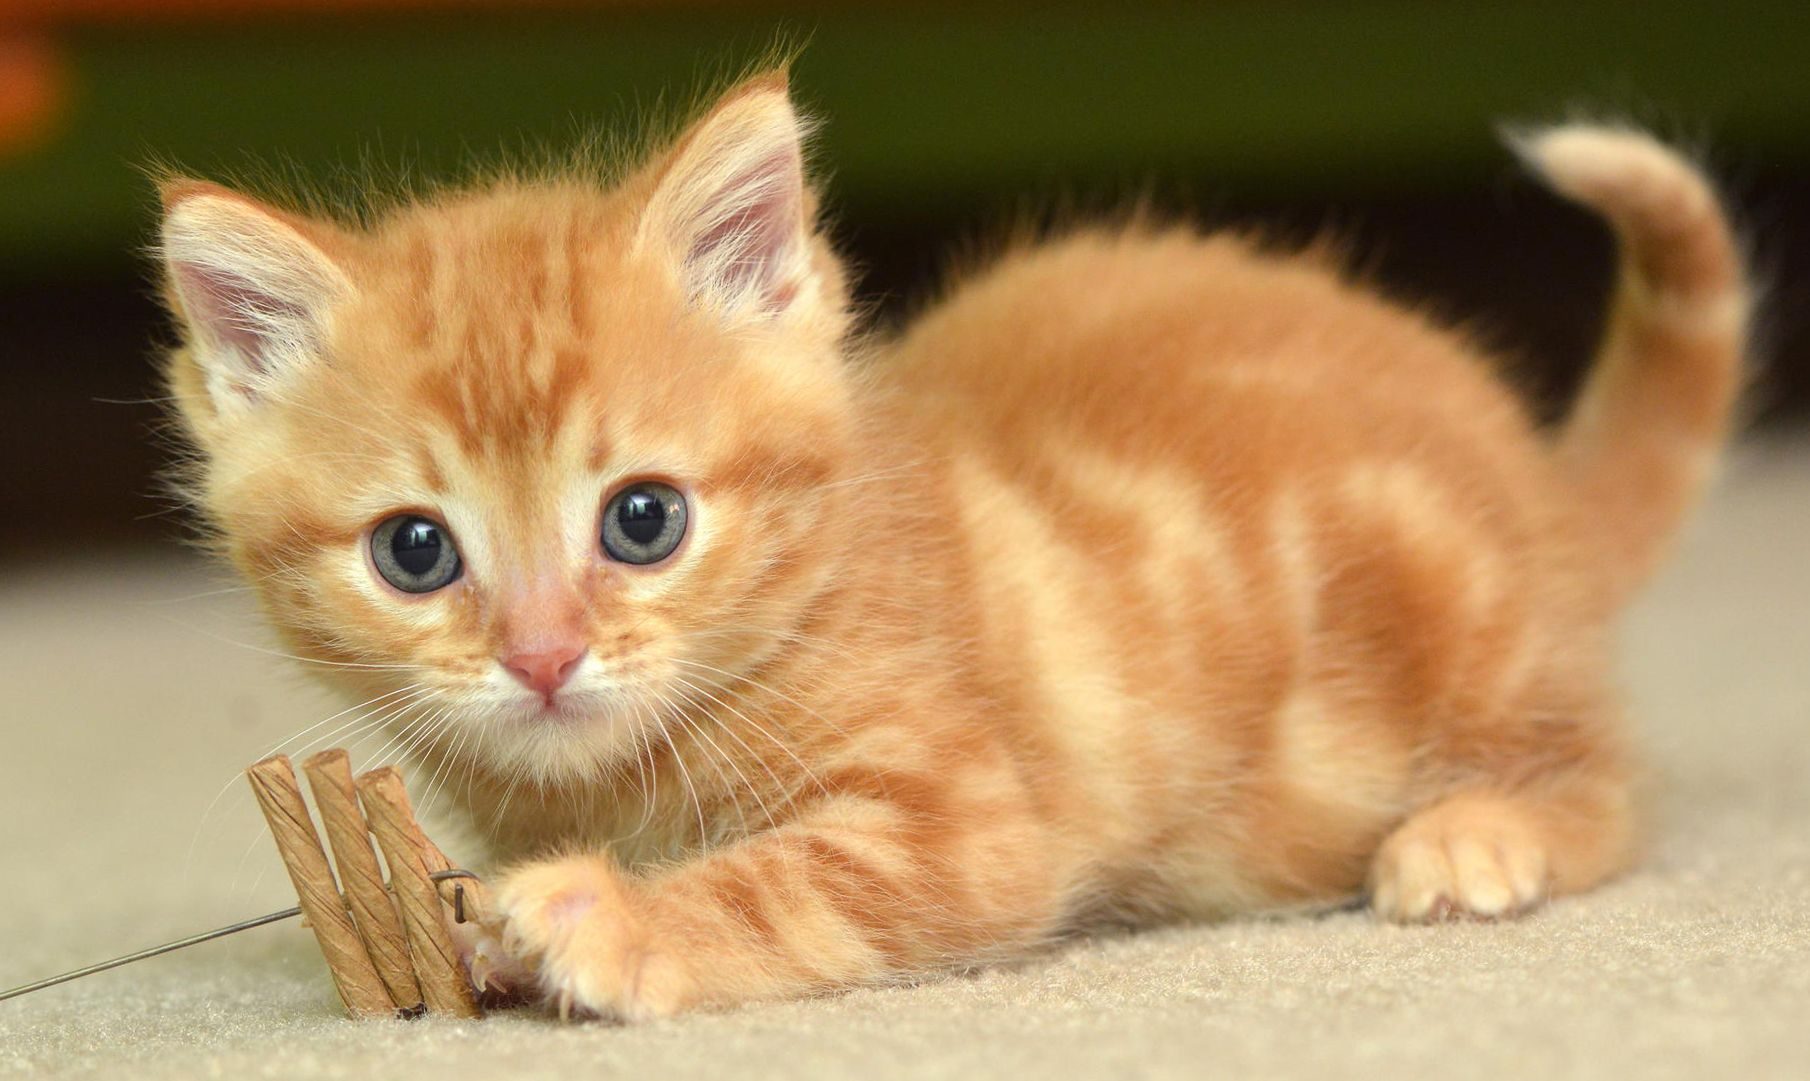 Hd Cat Wallpapers, Kitten Images, Cute Cat Photos, Claw